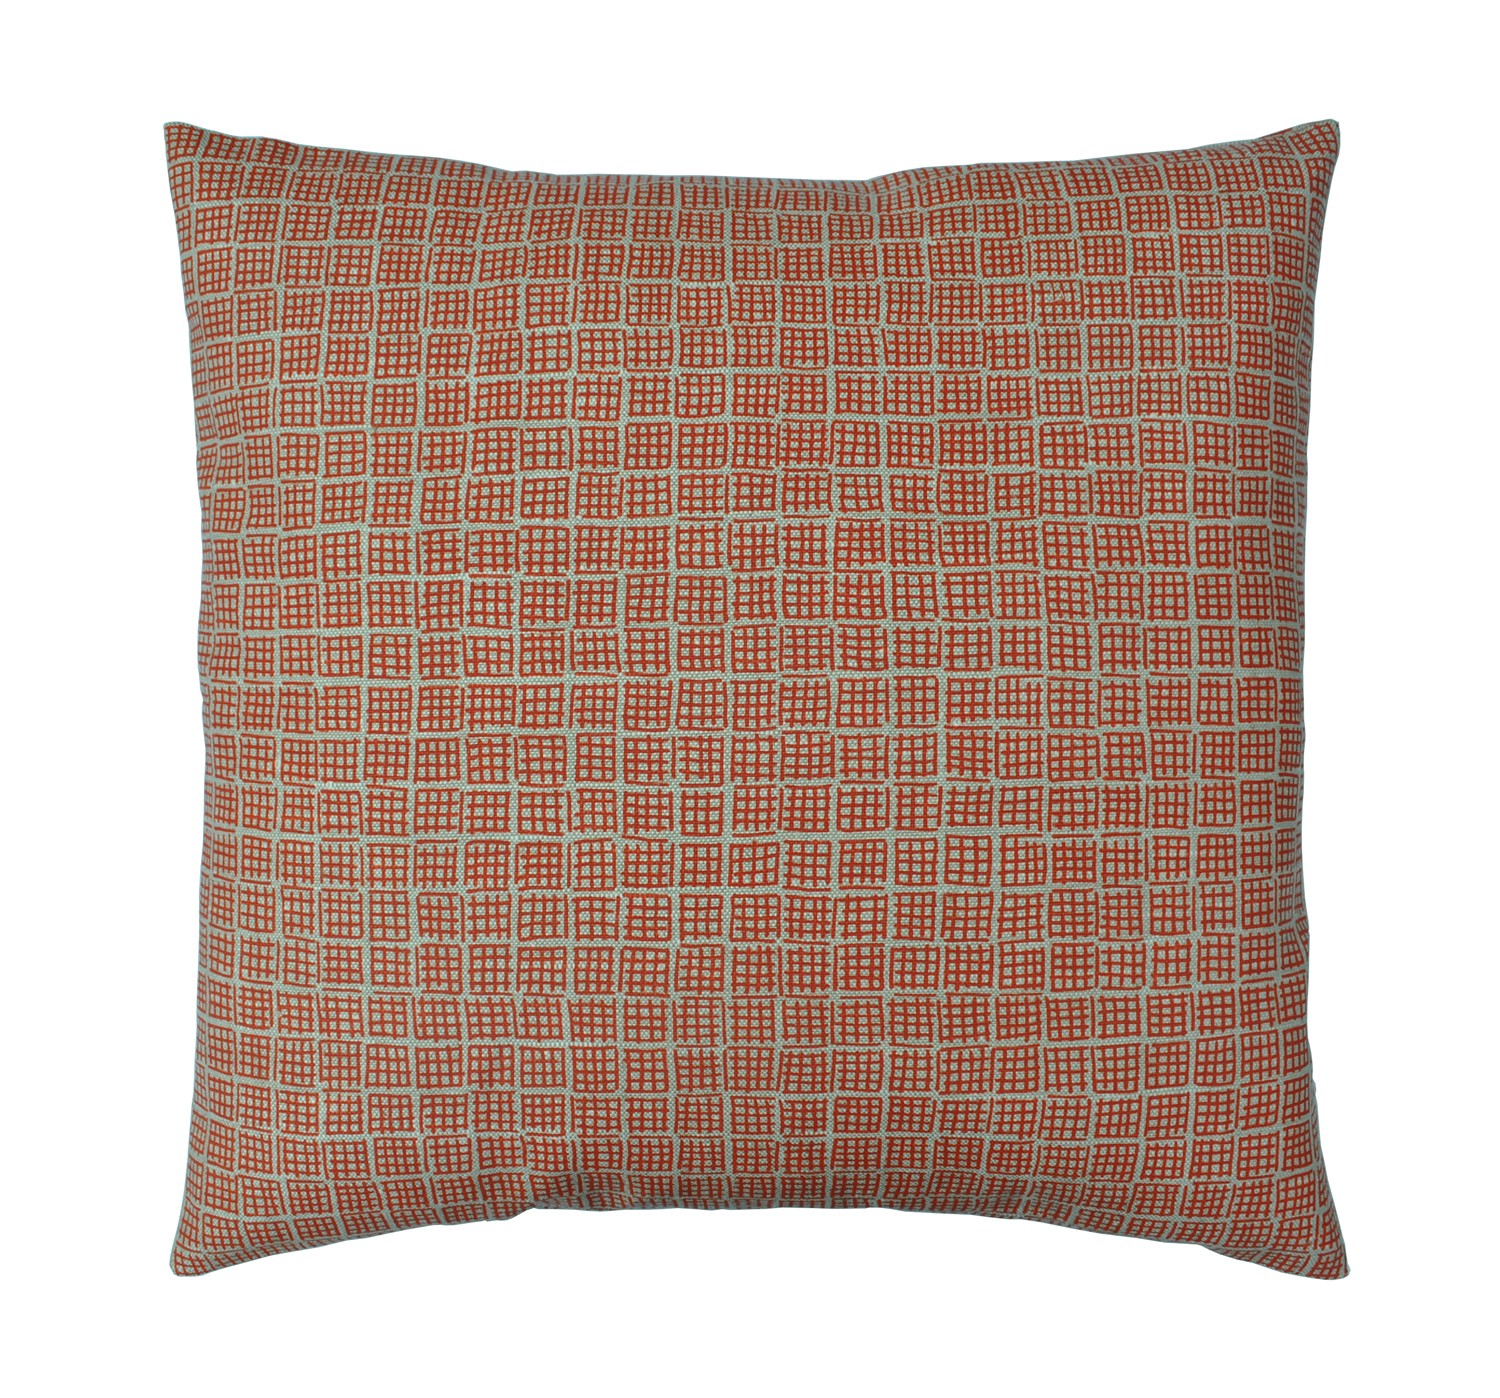 Ivor Square cushion Orange